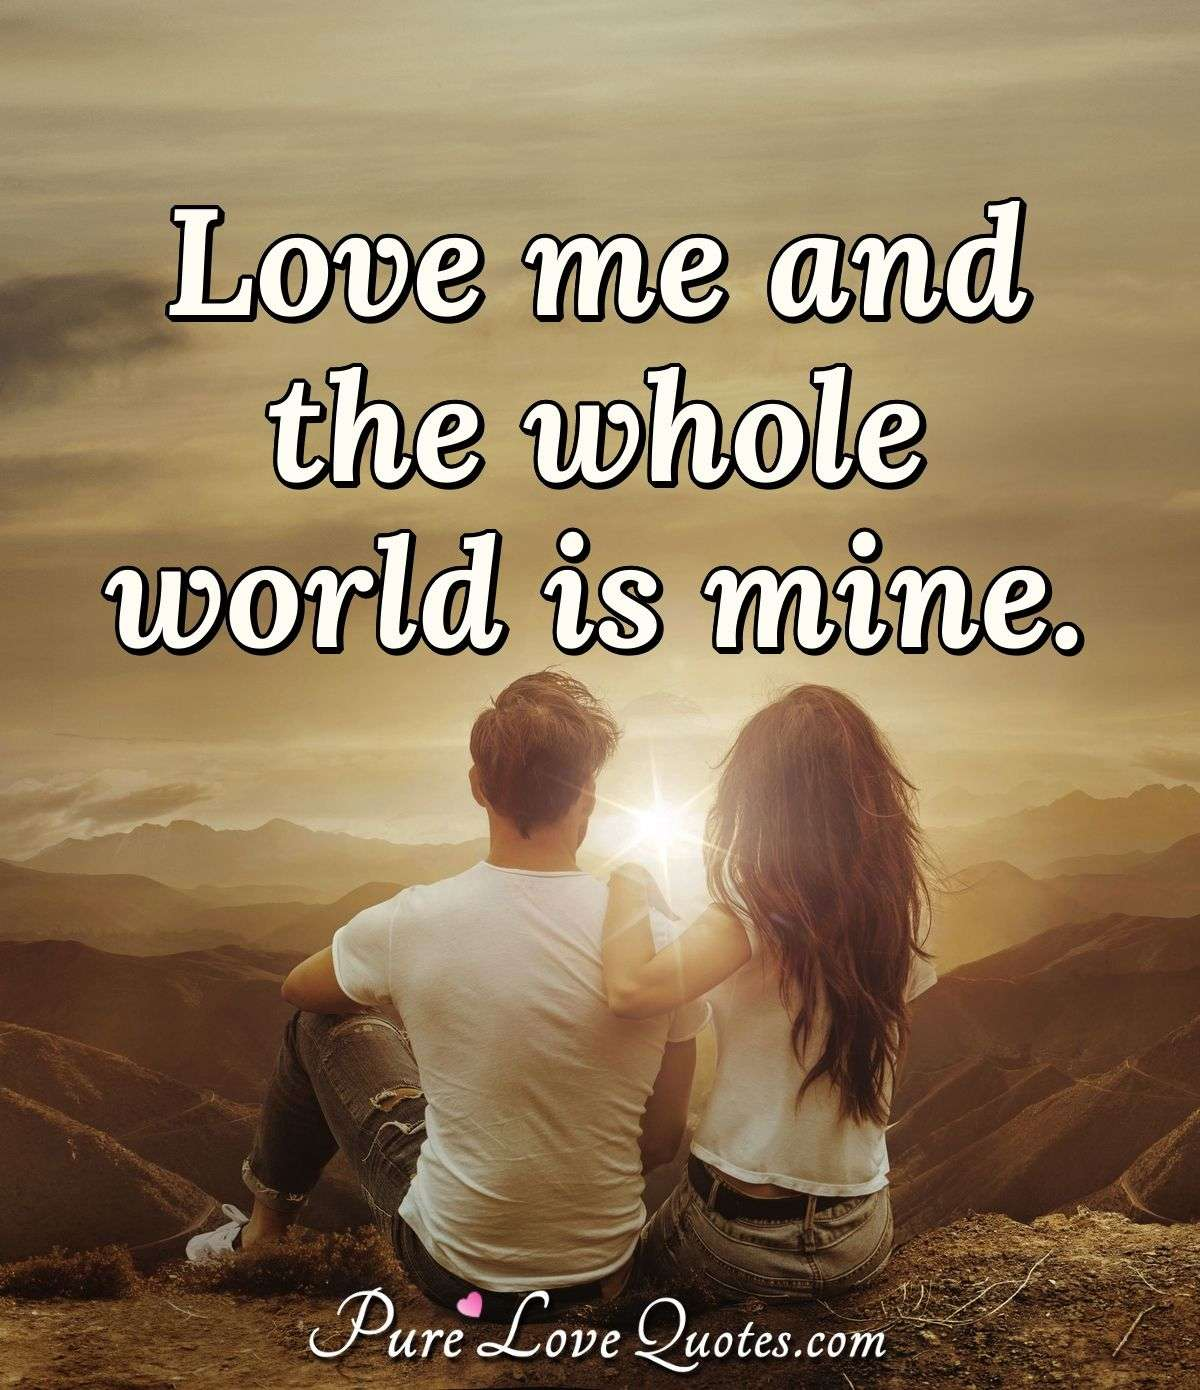 Love me and the whole world is mine. - Anonymous